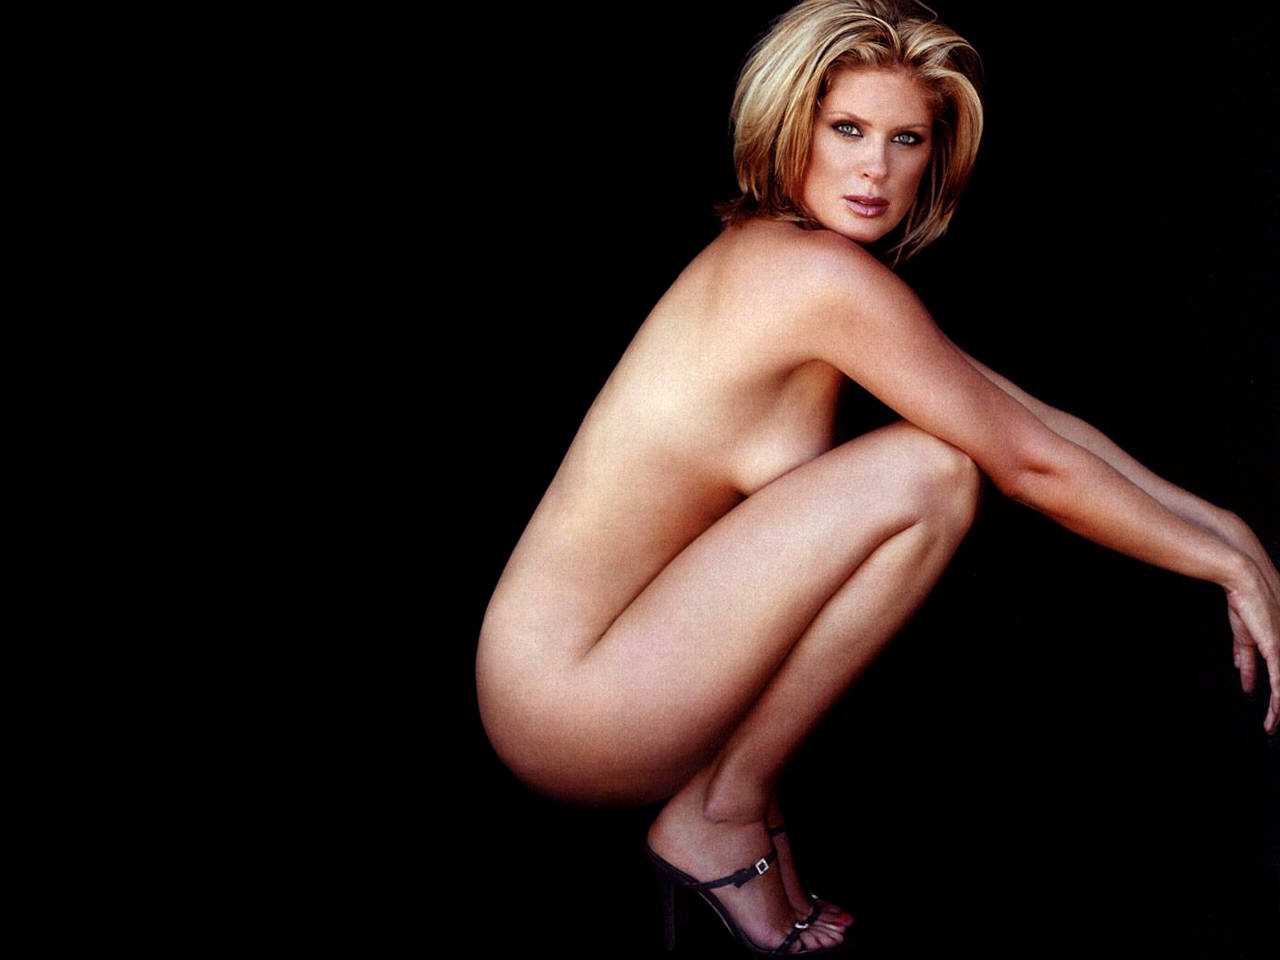 rachel-hunter-naked